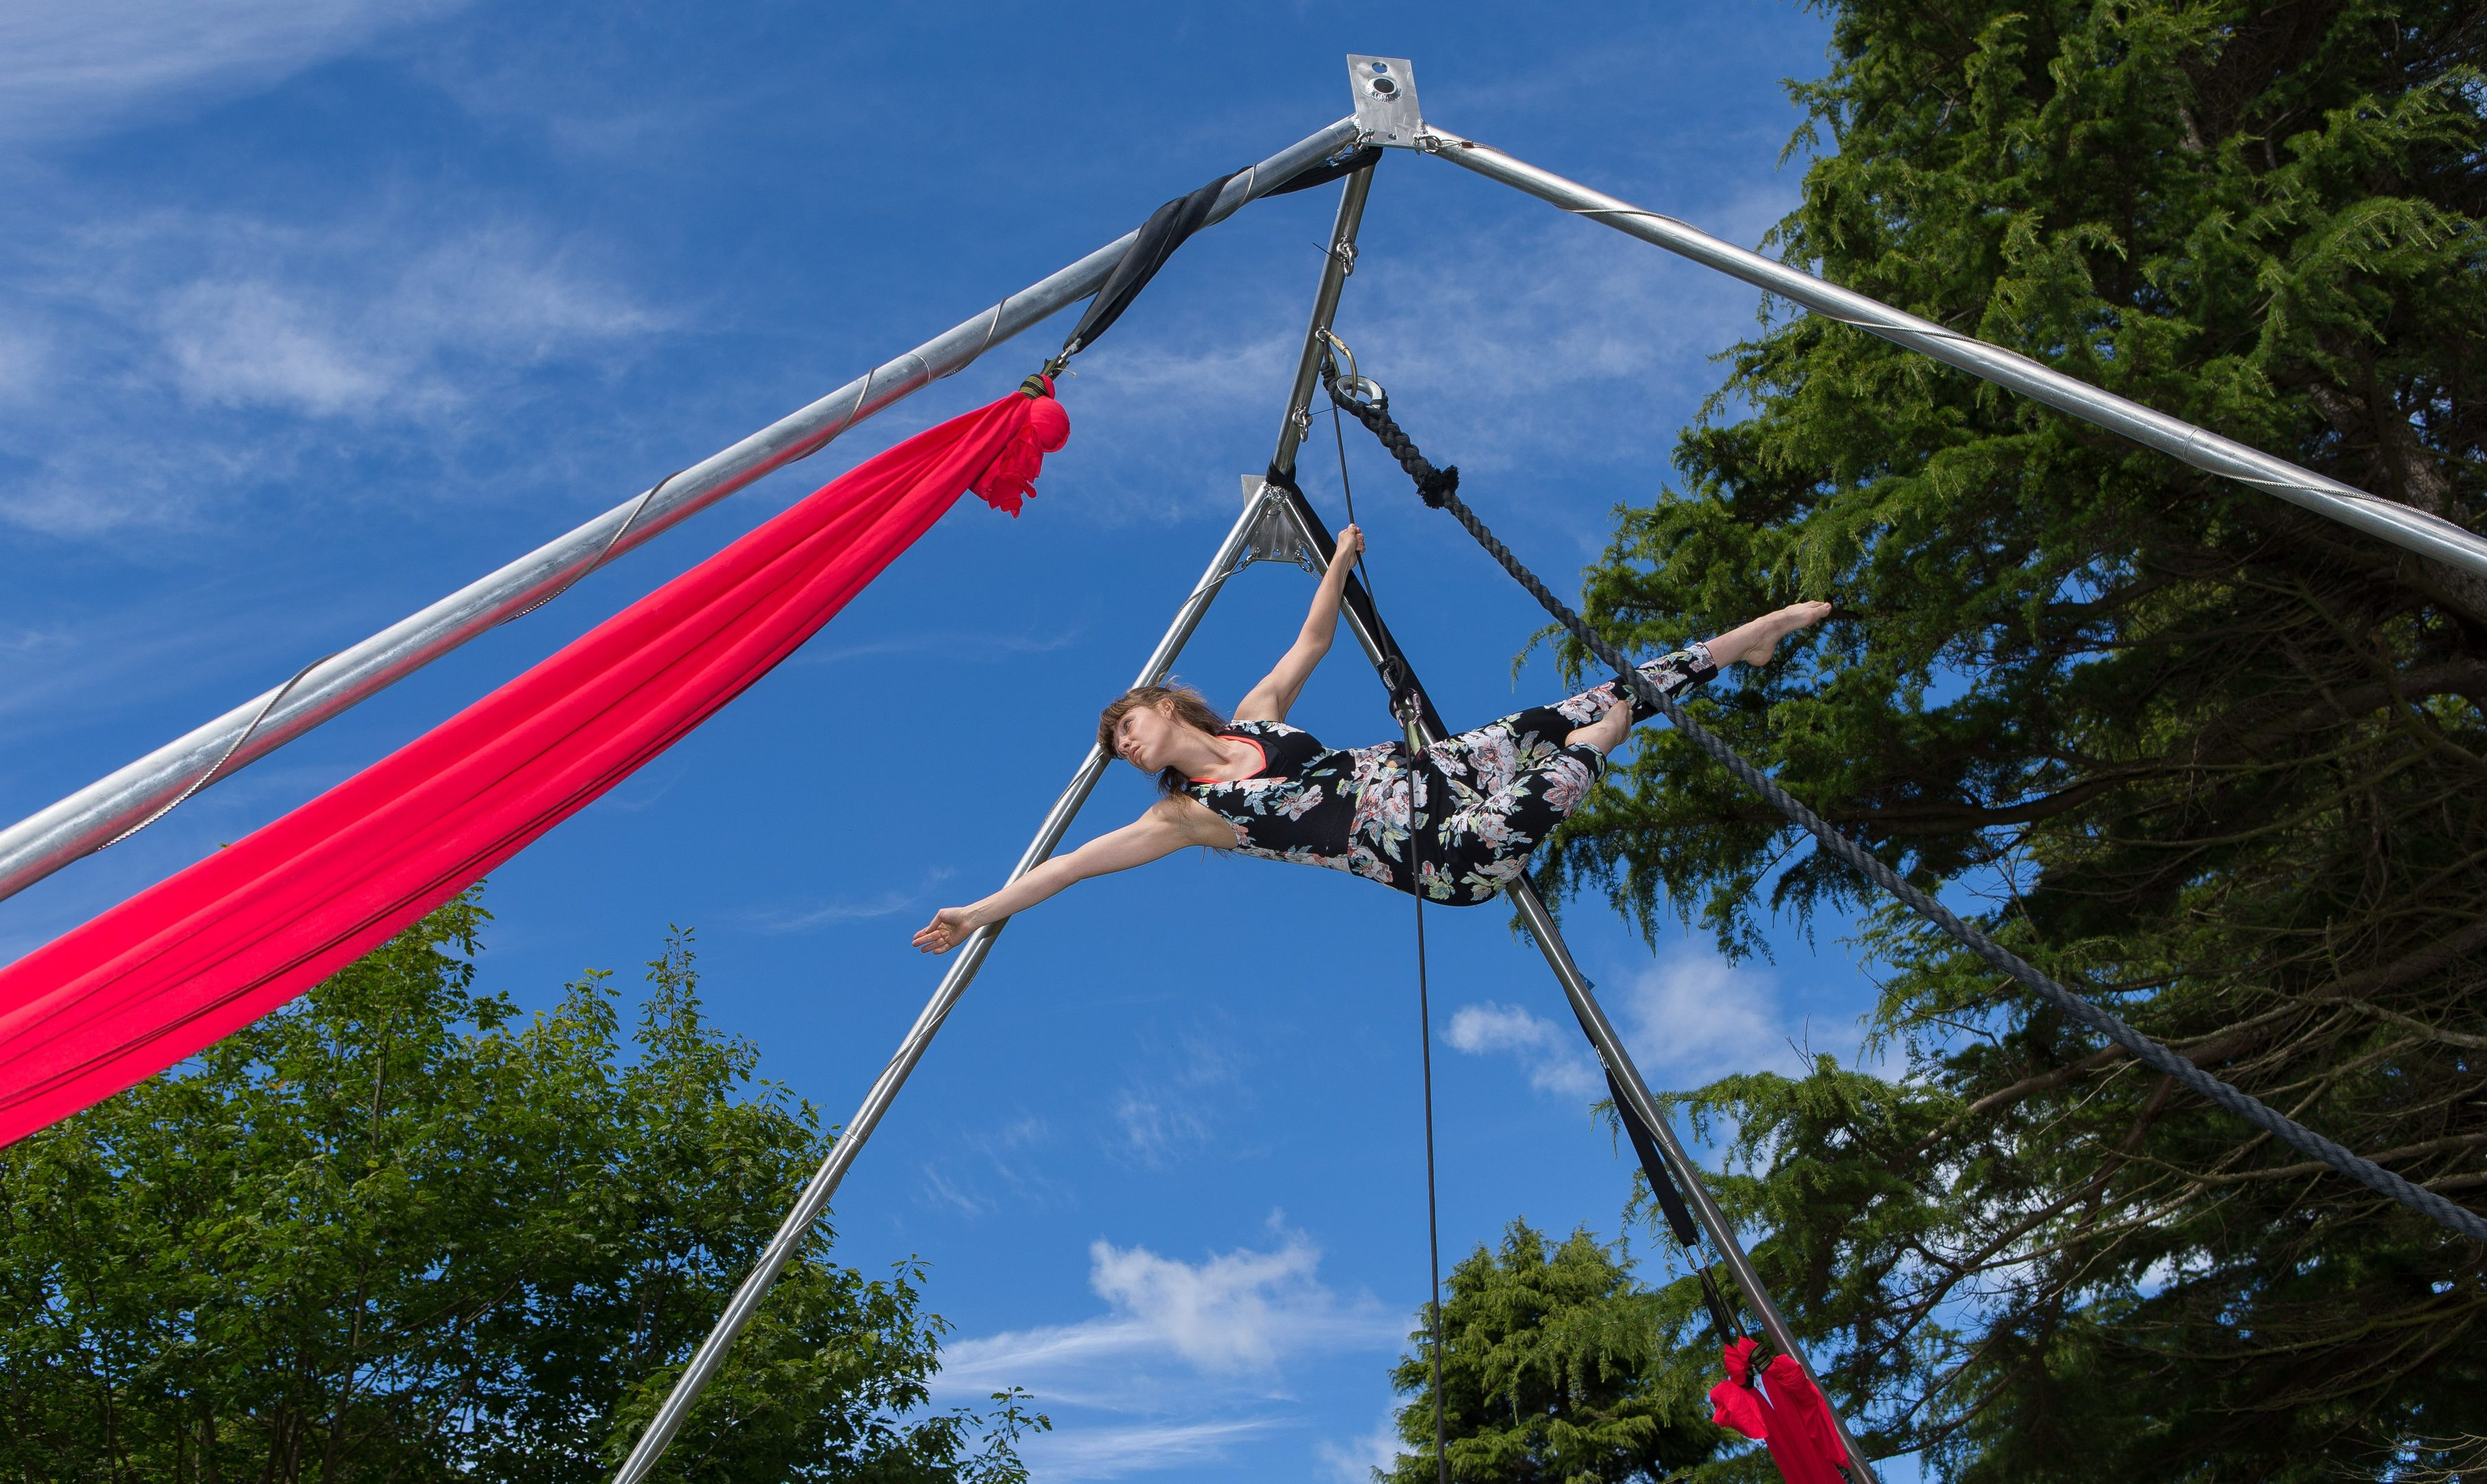 Marie WIlliamson flies high as part of the All or Nothing Aerial Dance performance at Festival 16